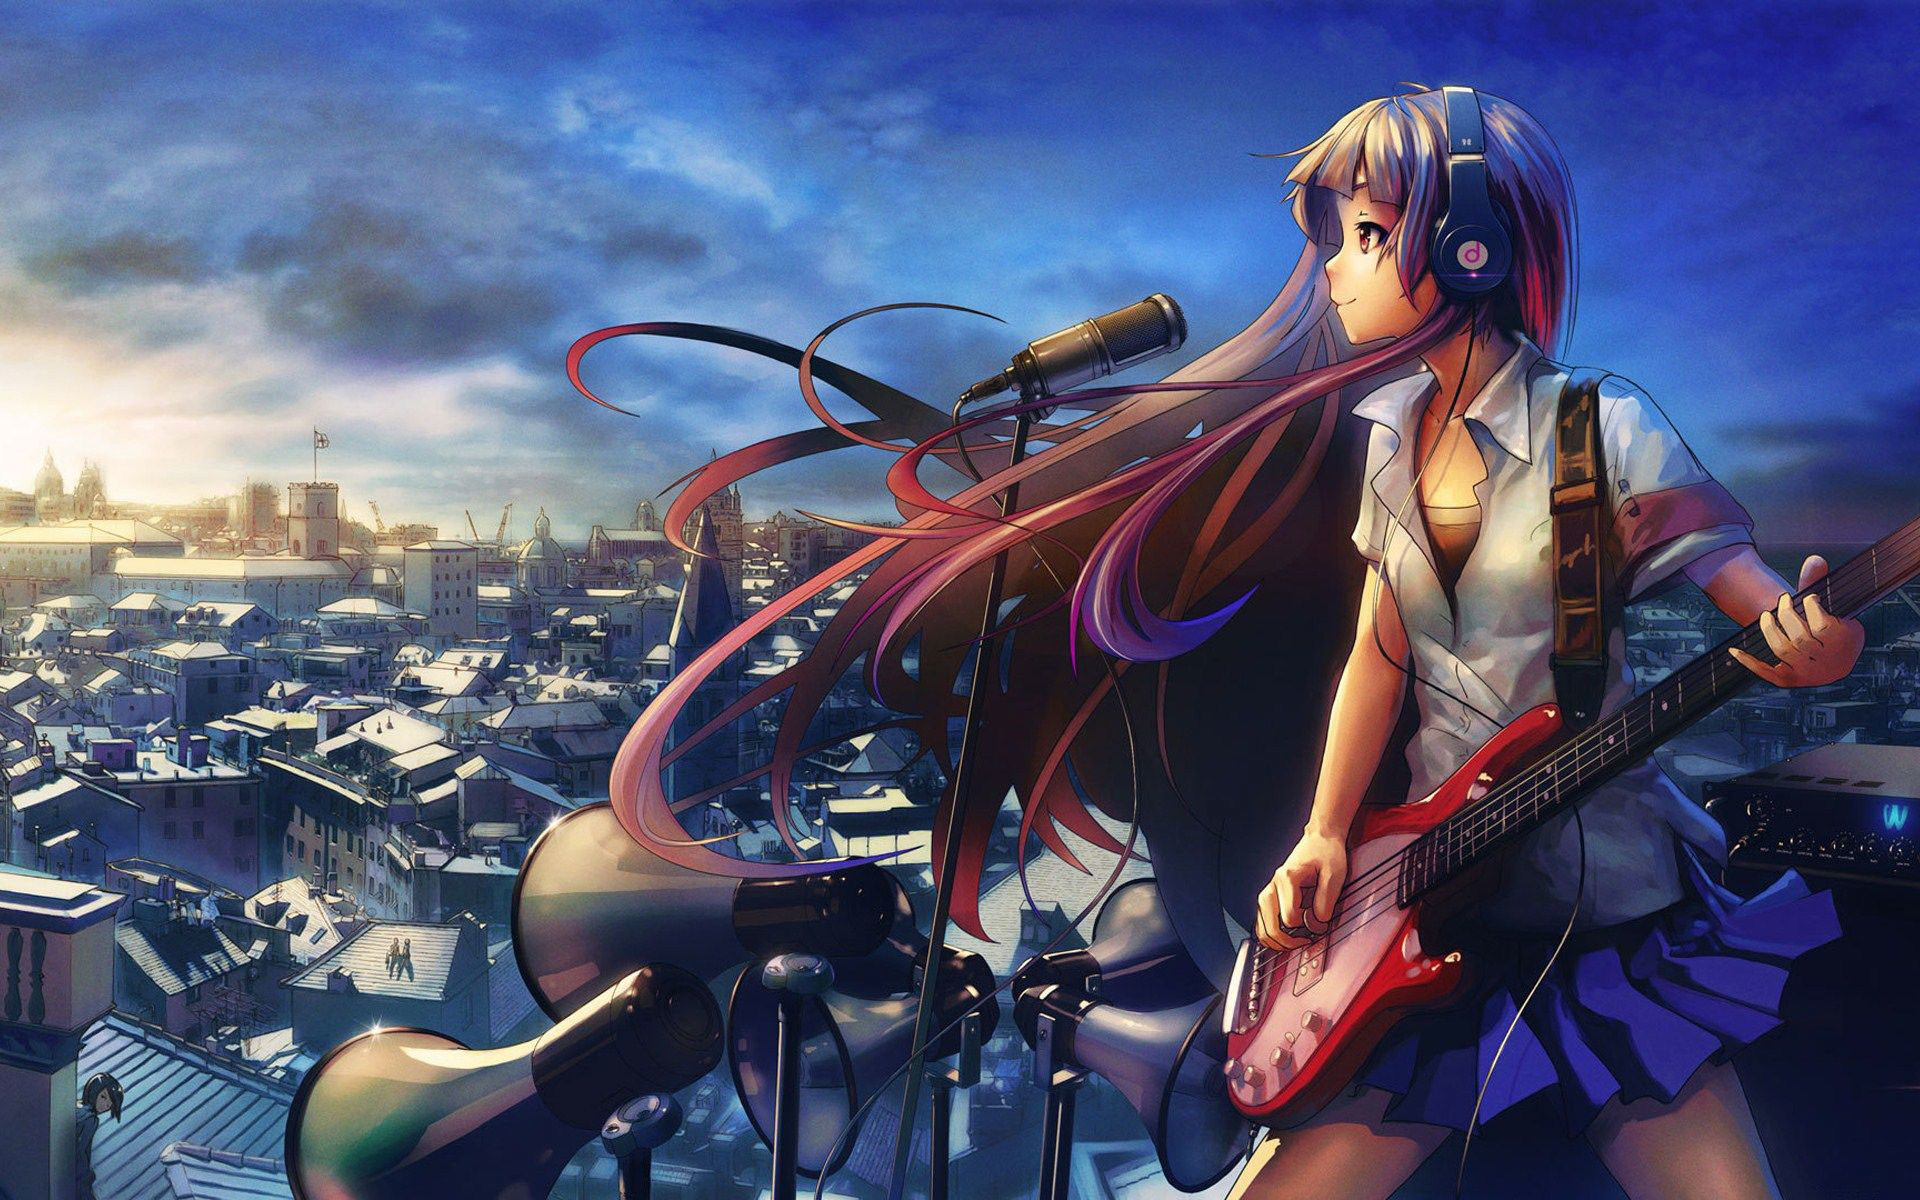 Anime Girls With Guitar Desktop HD Wallpapers in HD